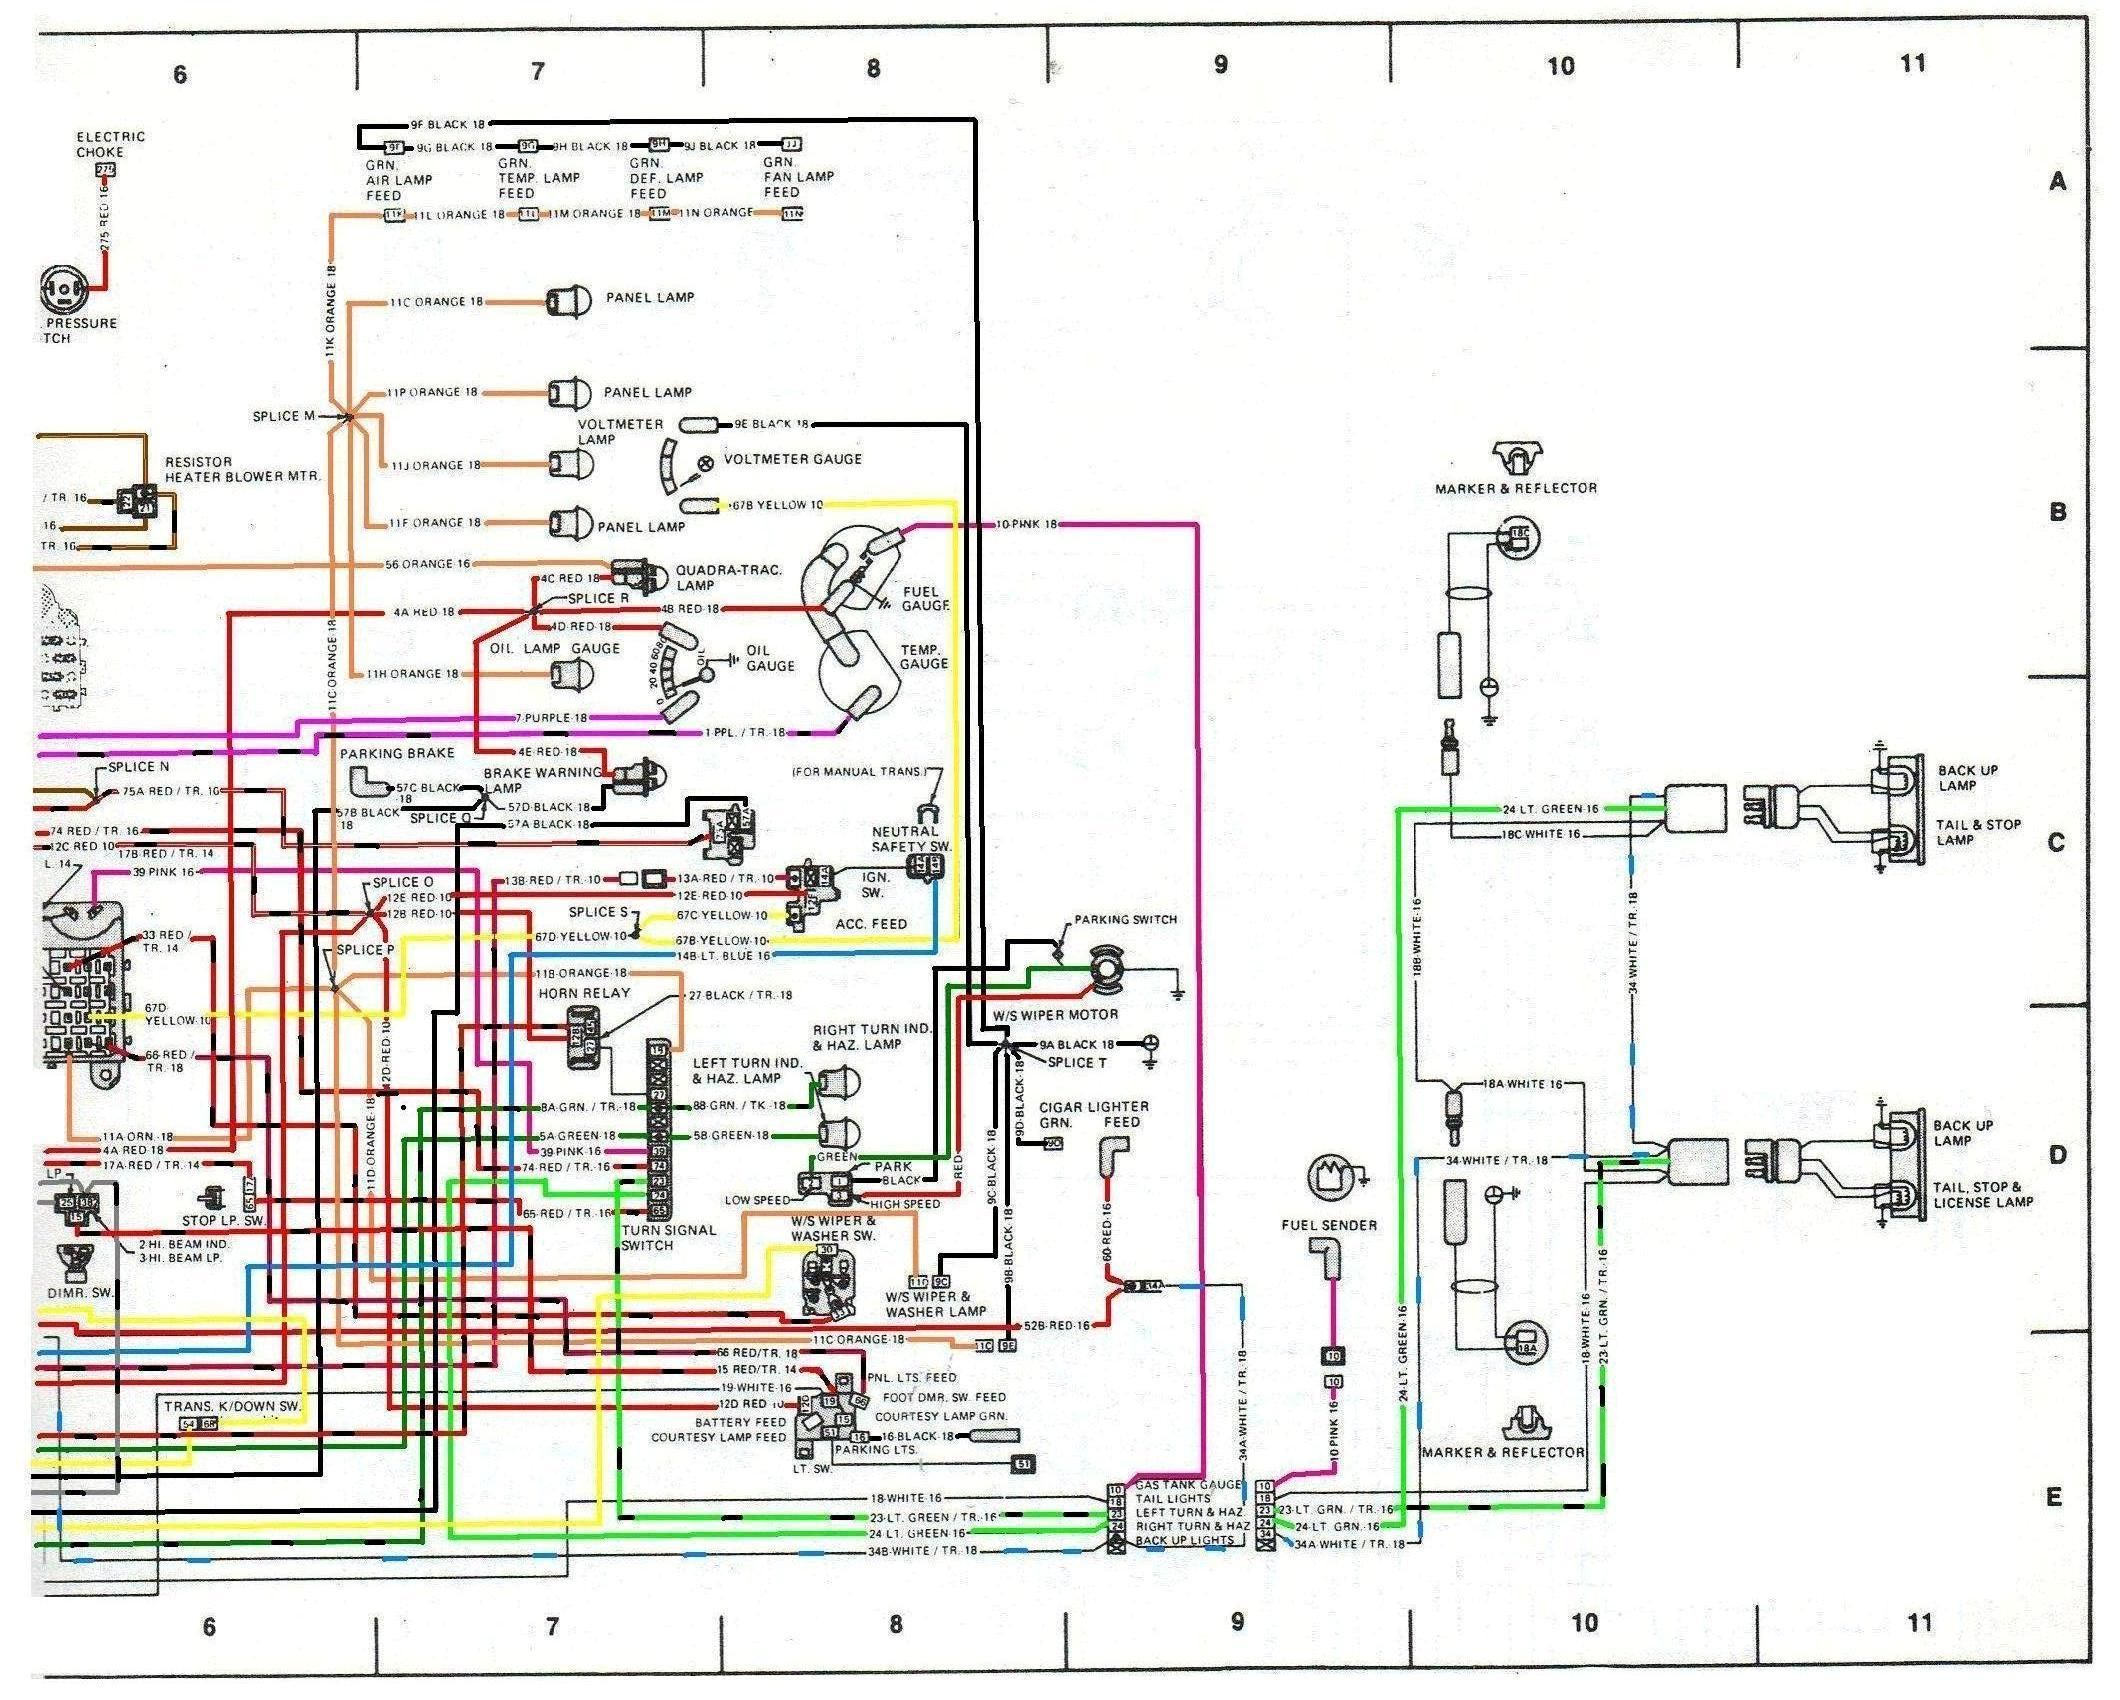 83 Jeep Cj7 Wiring Diagram Starting Know About Wiring Diagram \u2022  Ignition Switch Wiring Diagram Cj7 Wiring Diagram